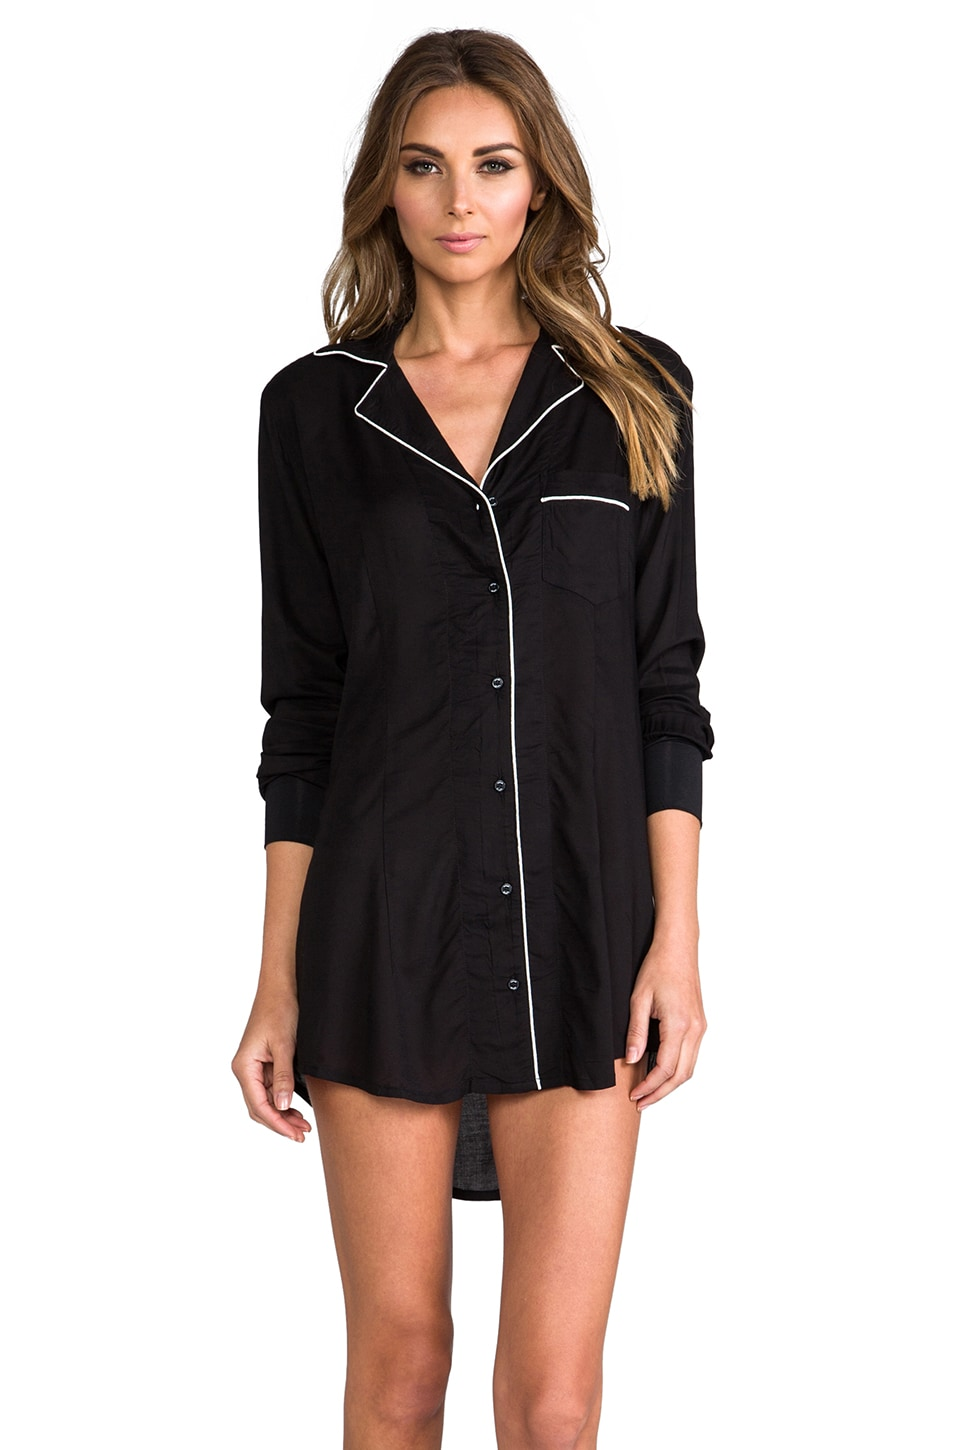 Splendid Mixed Company Boyfriend Sleep Shirt in Black